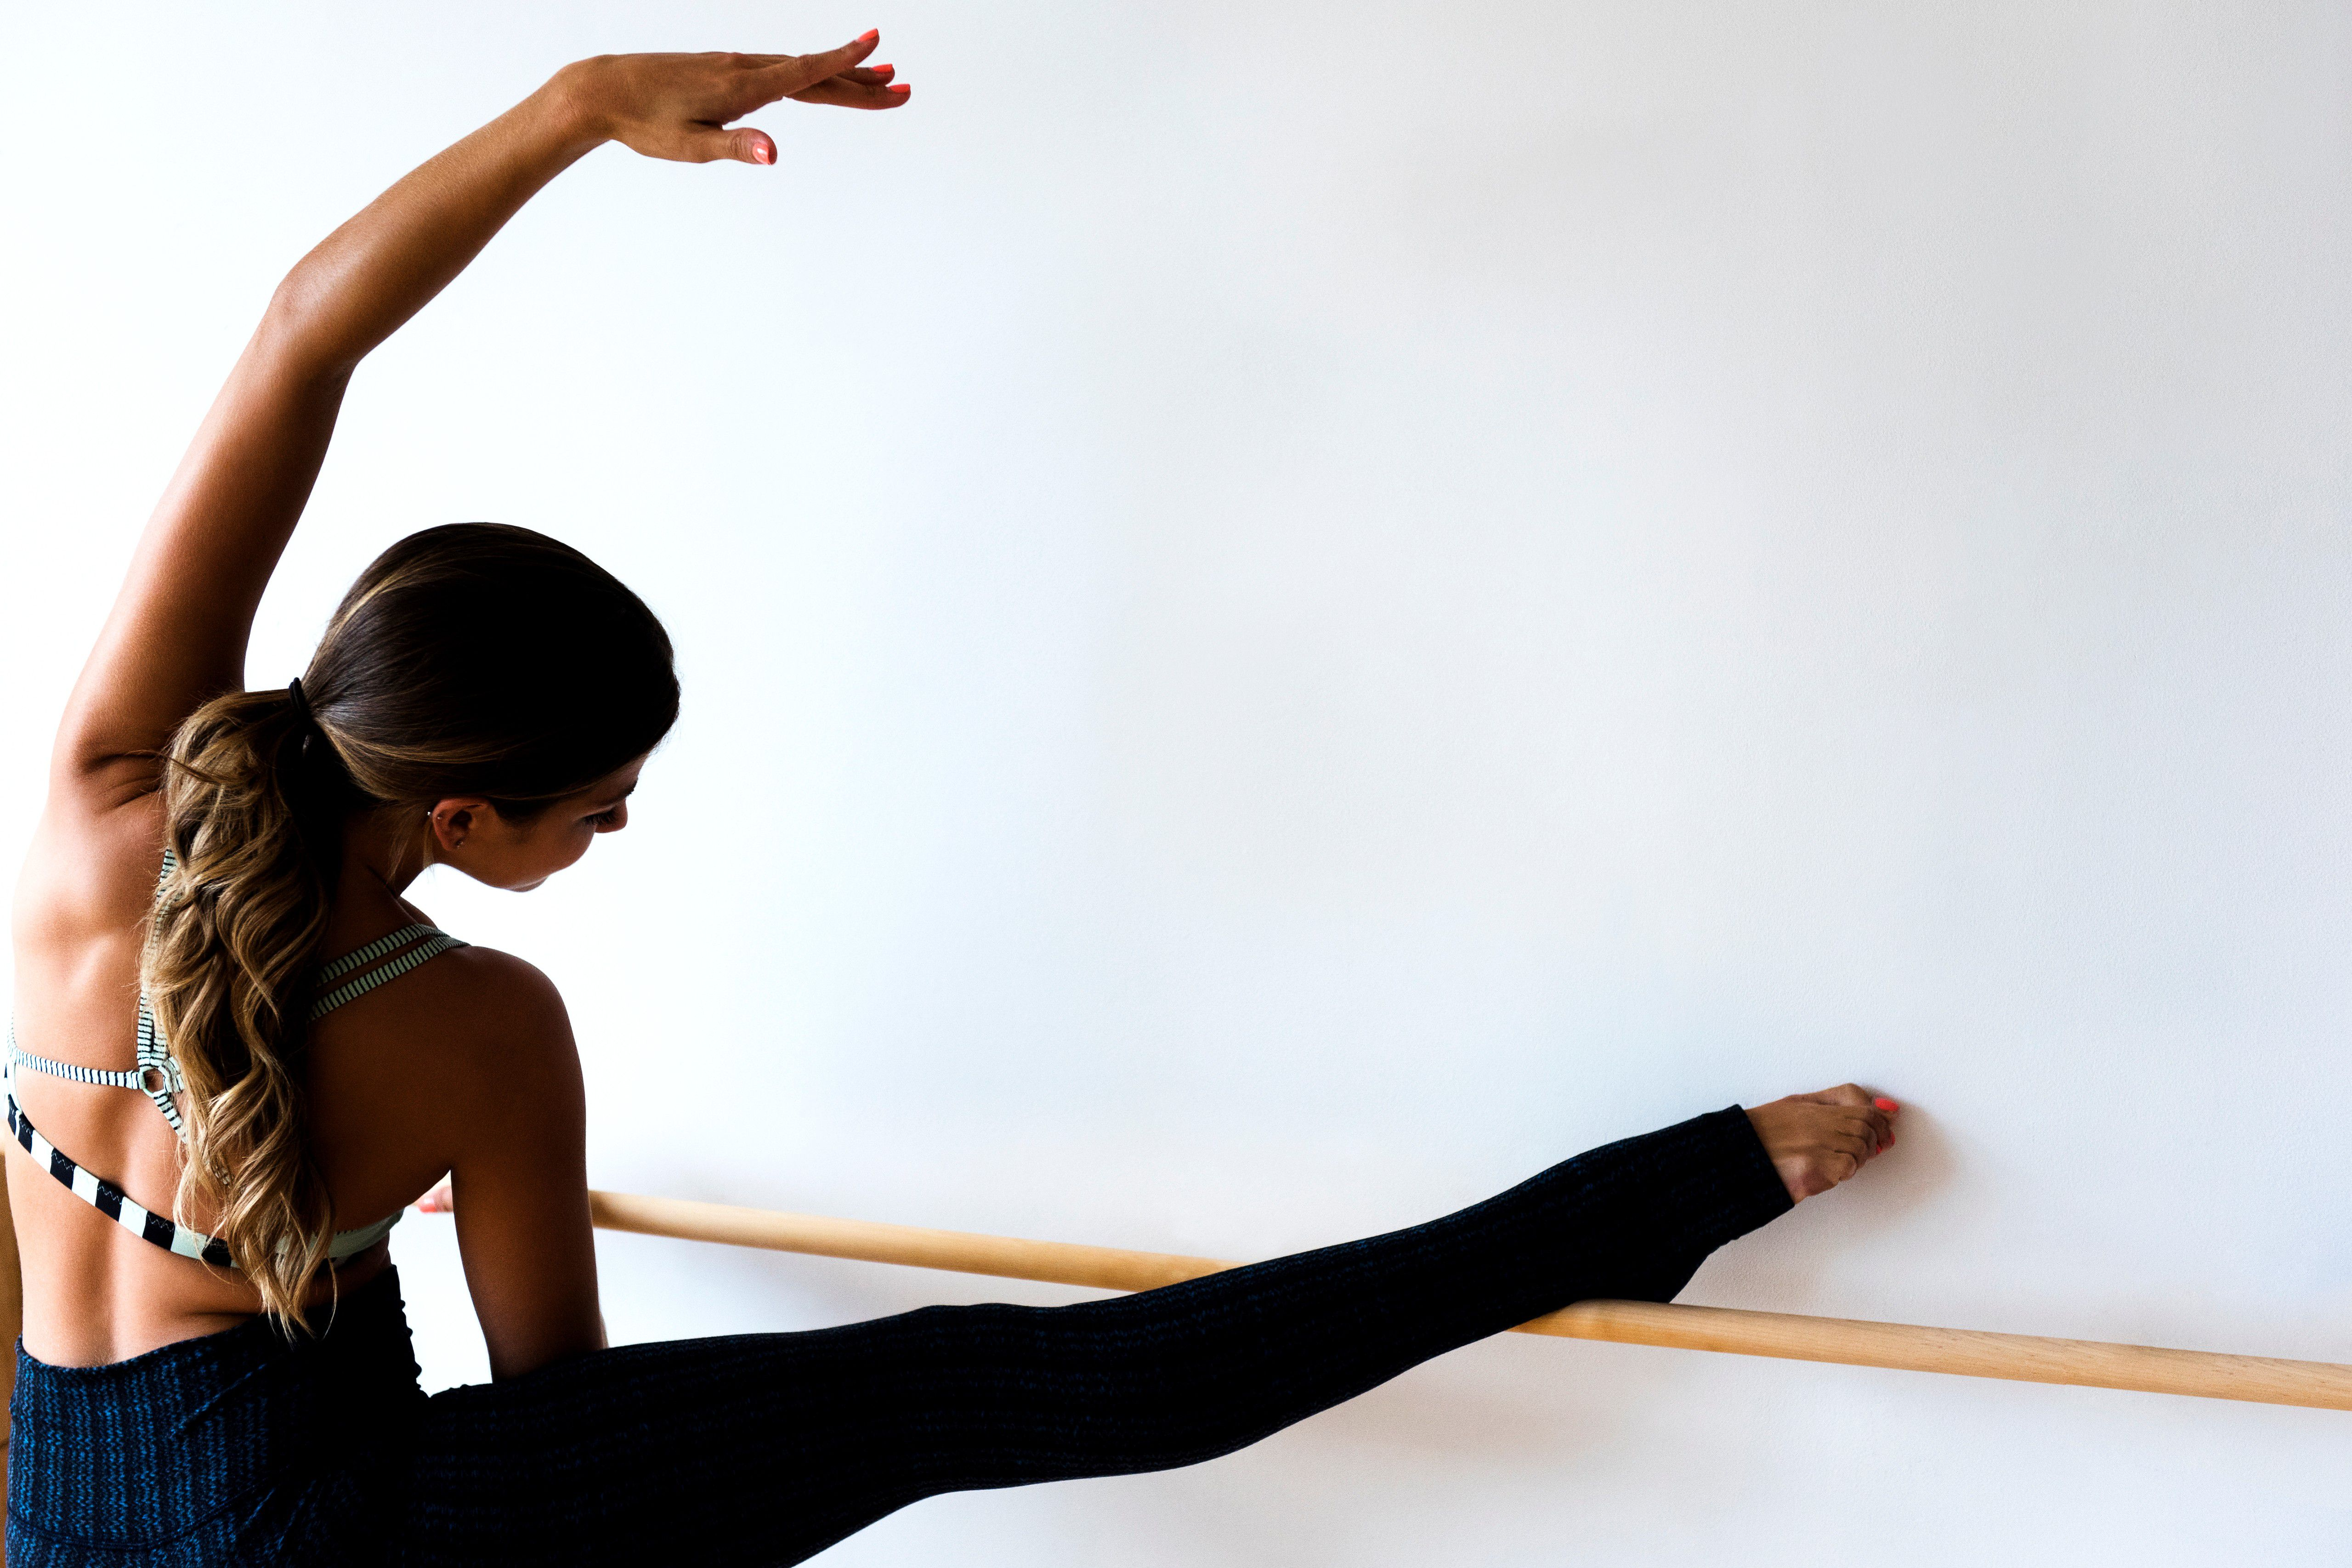 A dancer limbers up with a simple side stretch on the ballet barre